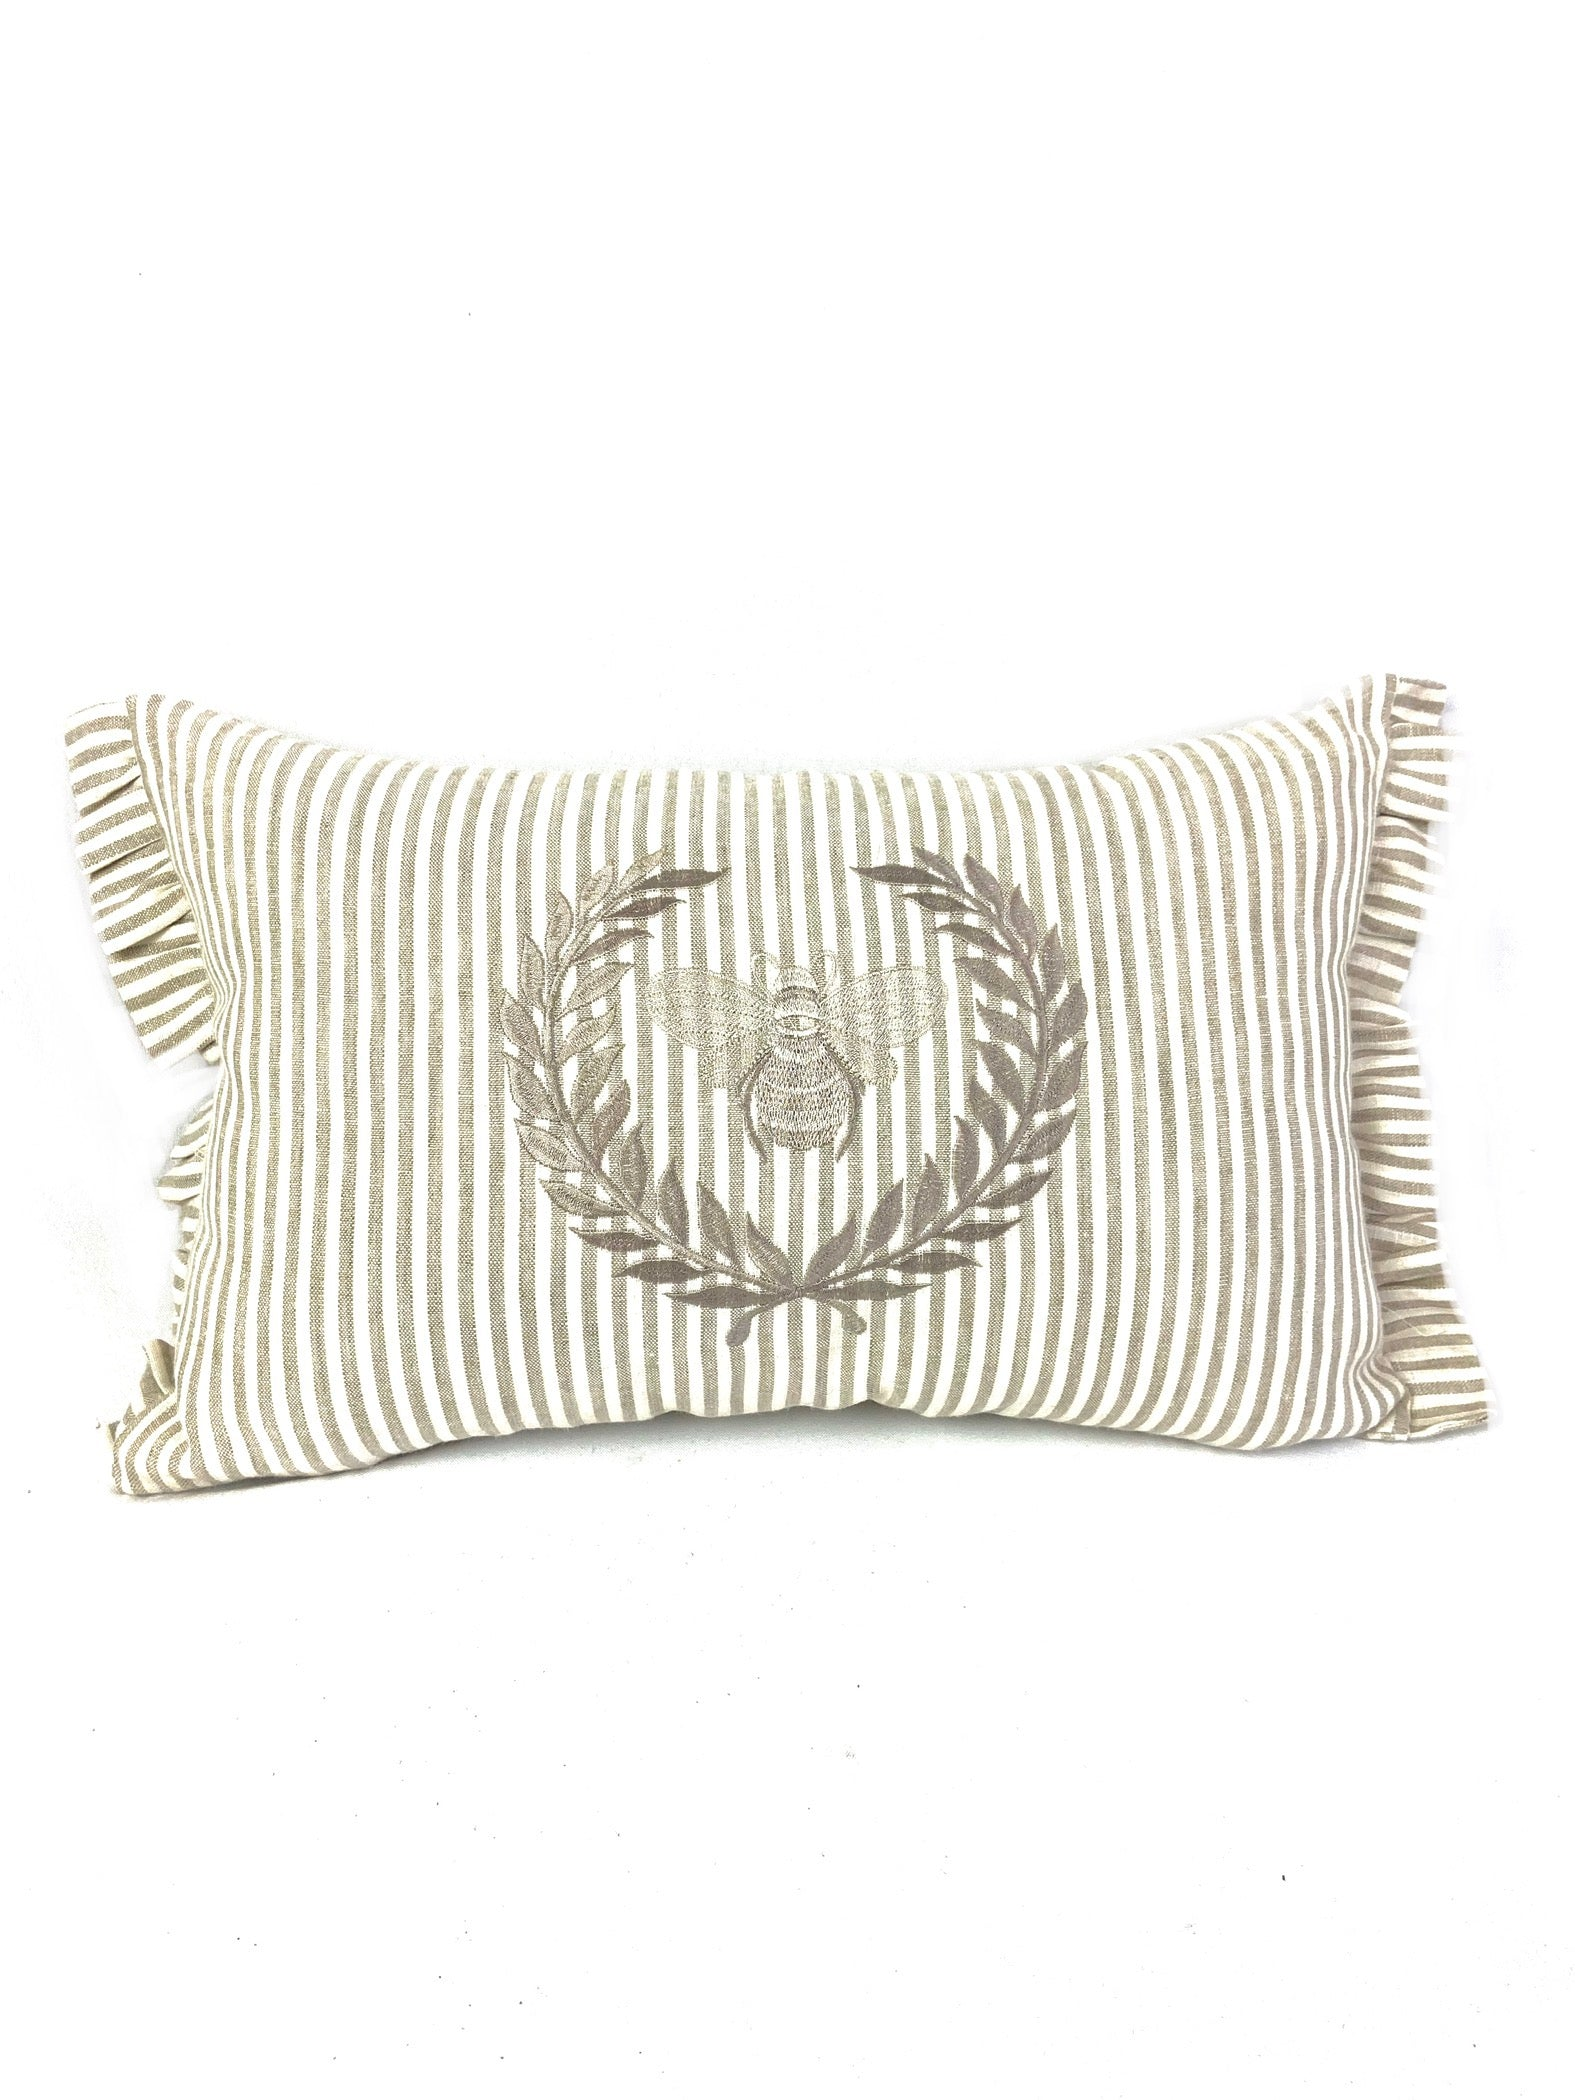 Bumble Bee Striped Linen Pillow